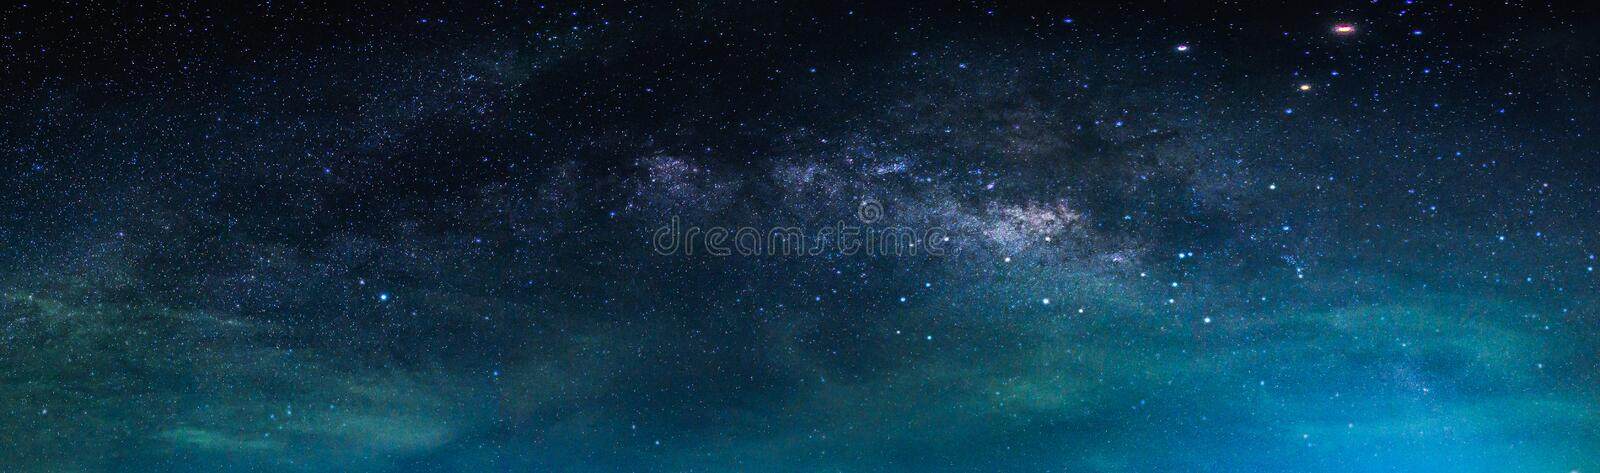 Download Landscape With Milky Way Galaxy. Night Sky With Stars Stock Photo - Image of mountain, landscape: 84978402